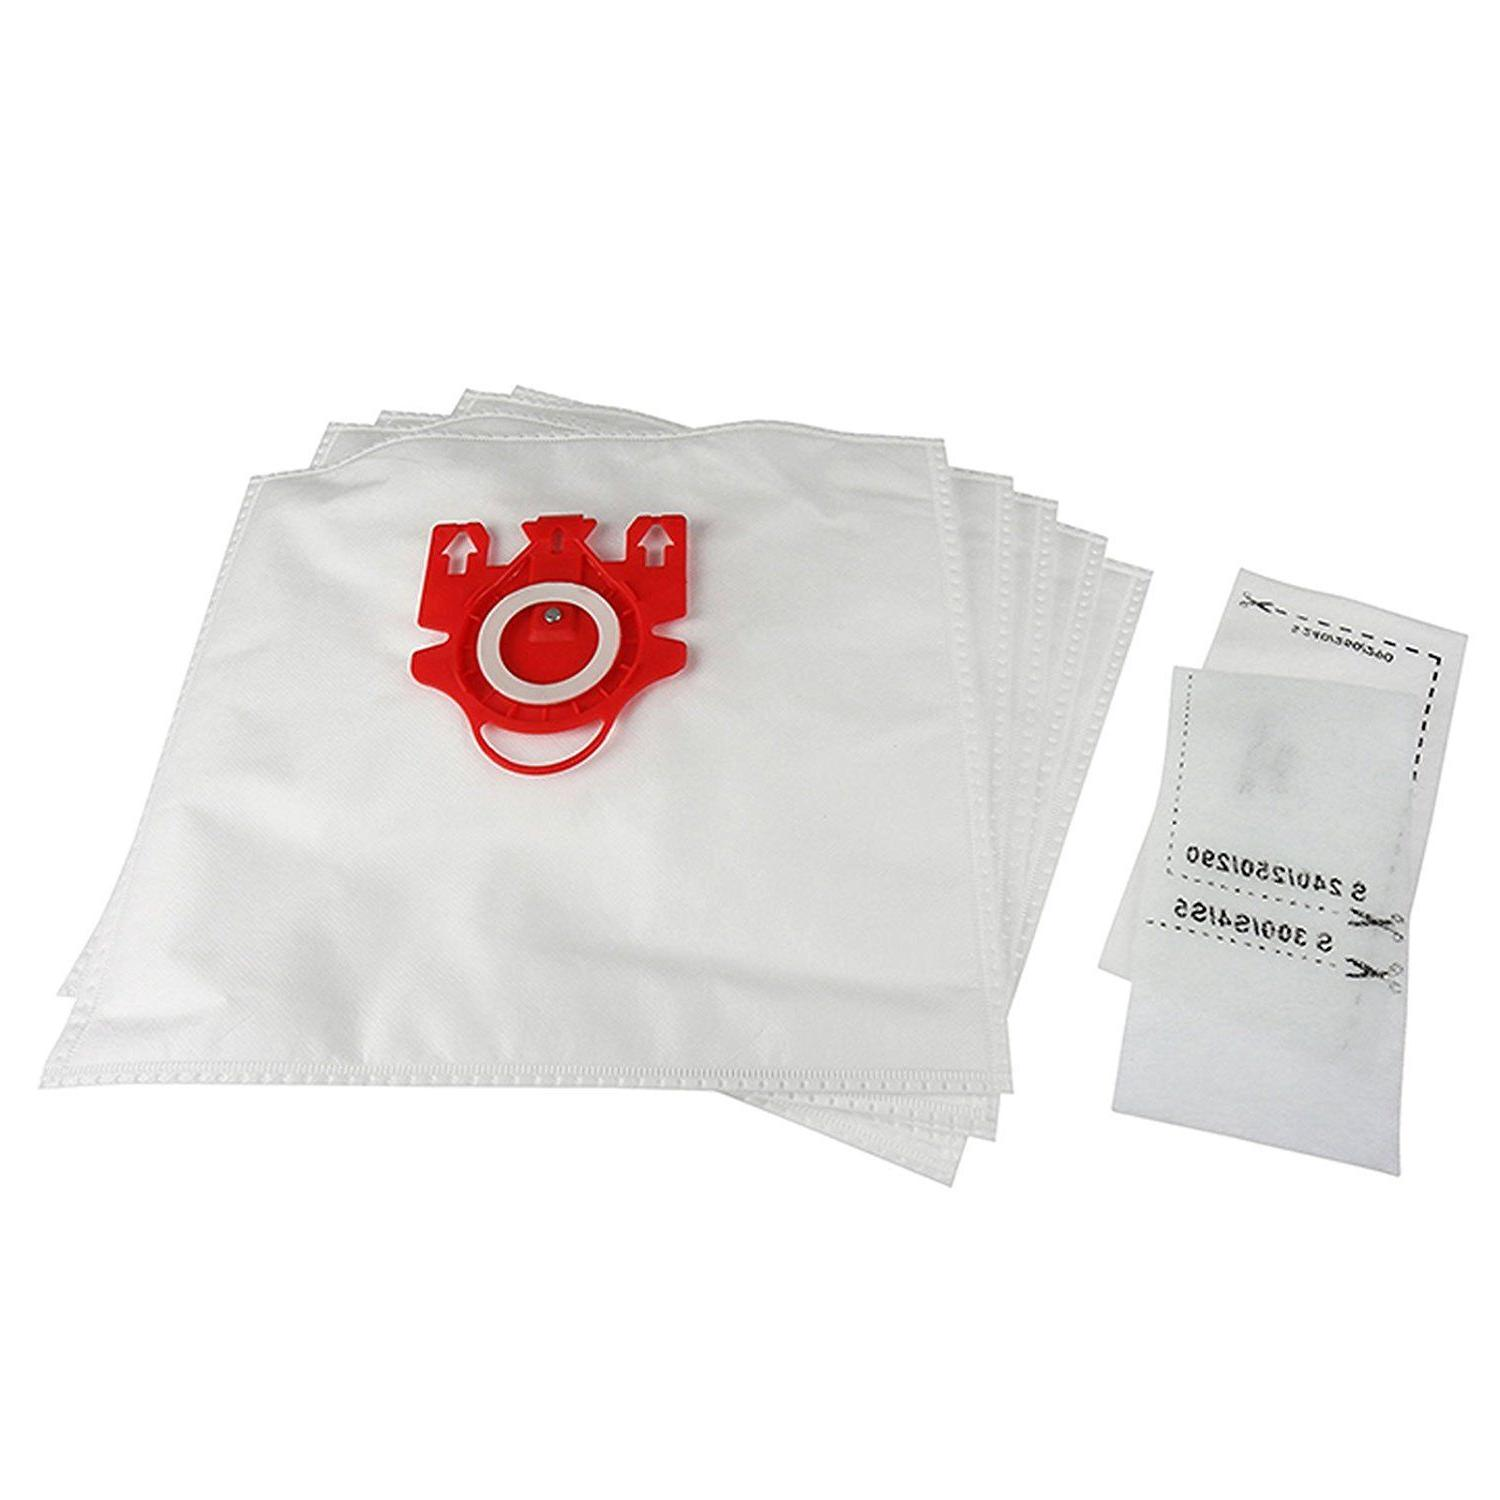 AirClean HyClean Miele FJM Compatible Canister Vacuum Bags